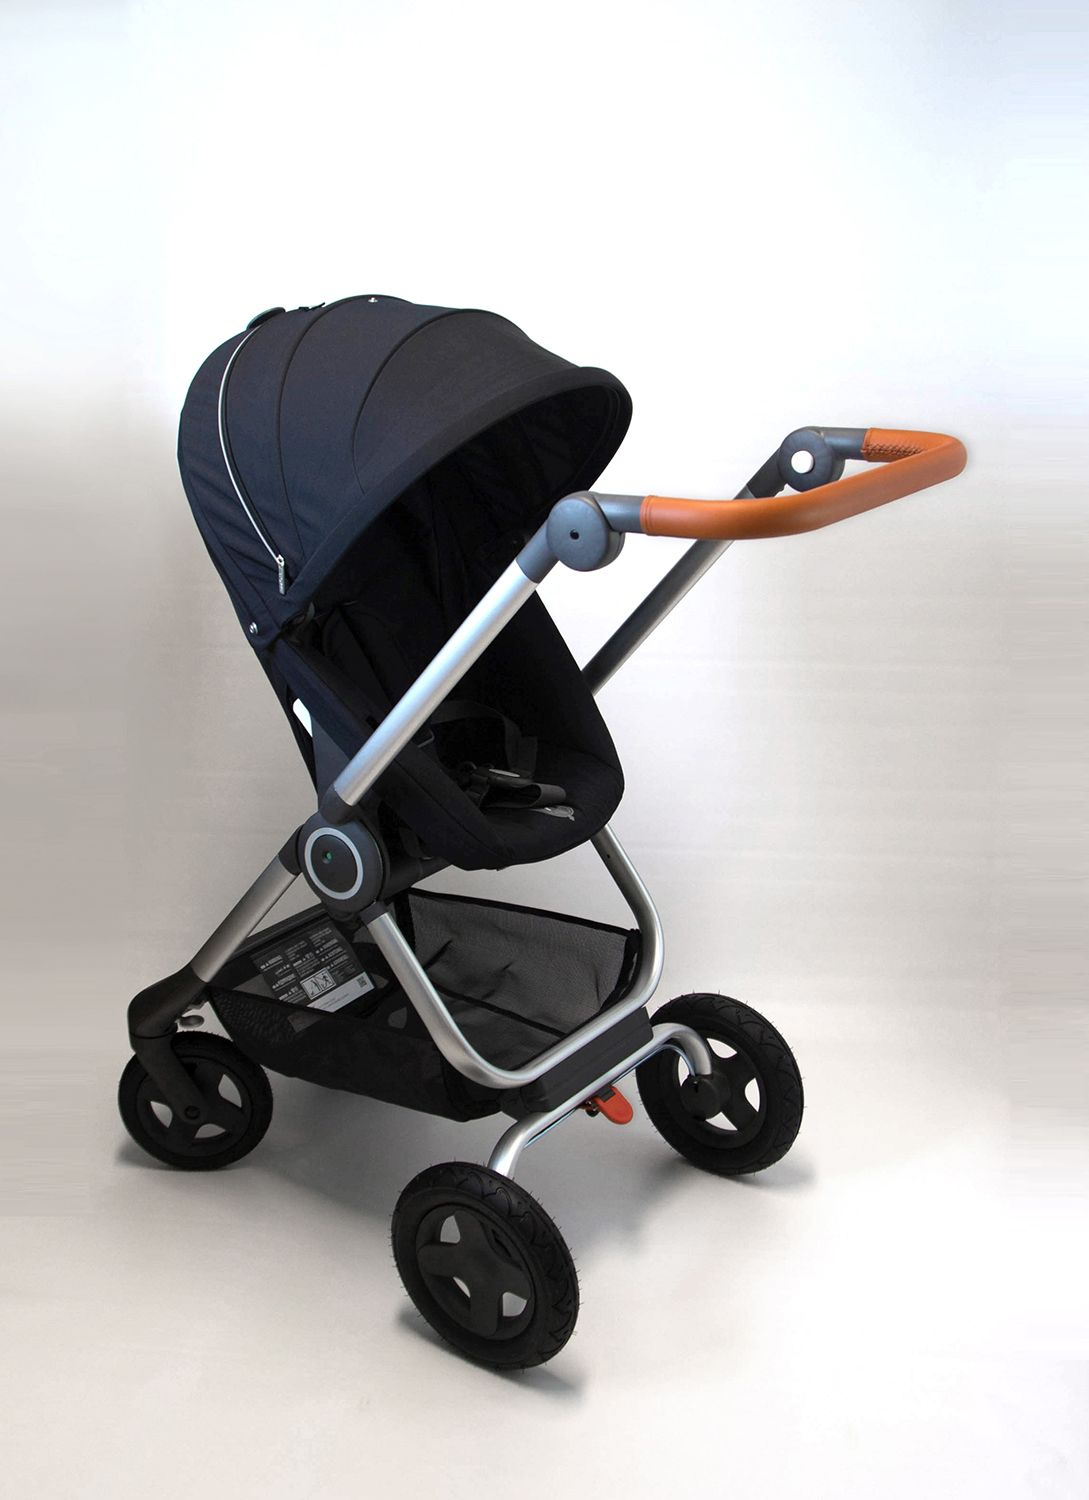 Stokke Scoot v2 real leather laceup covers Baby